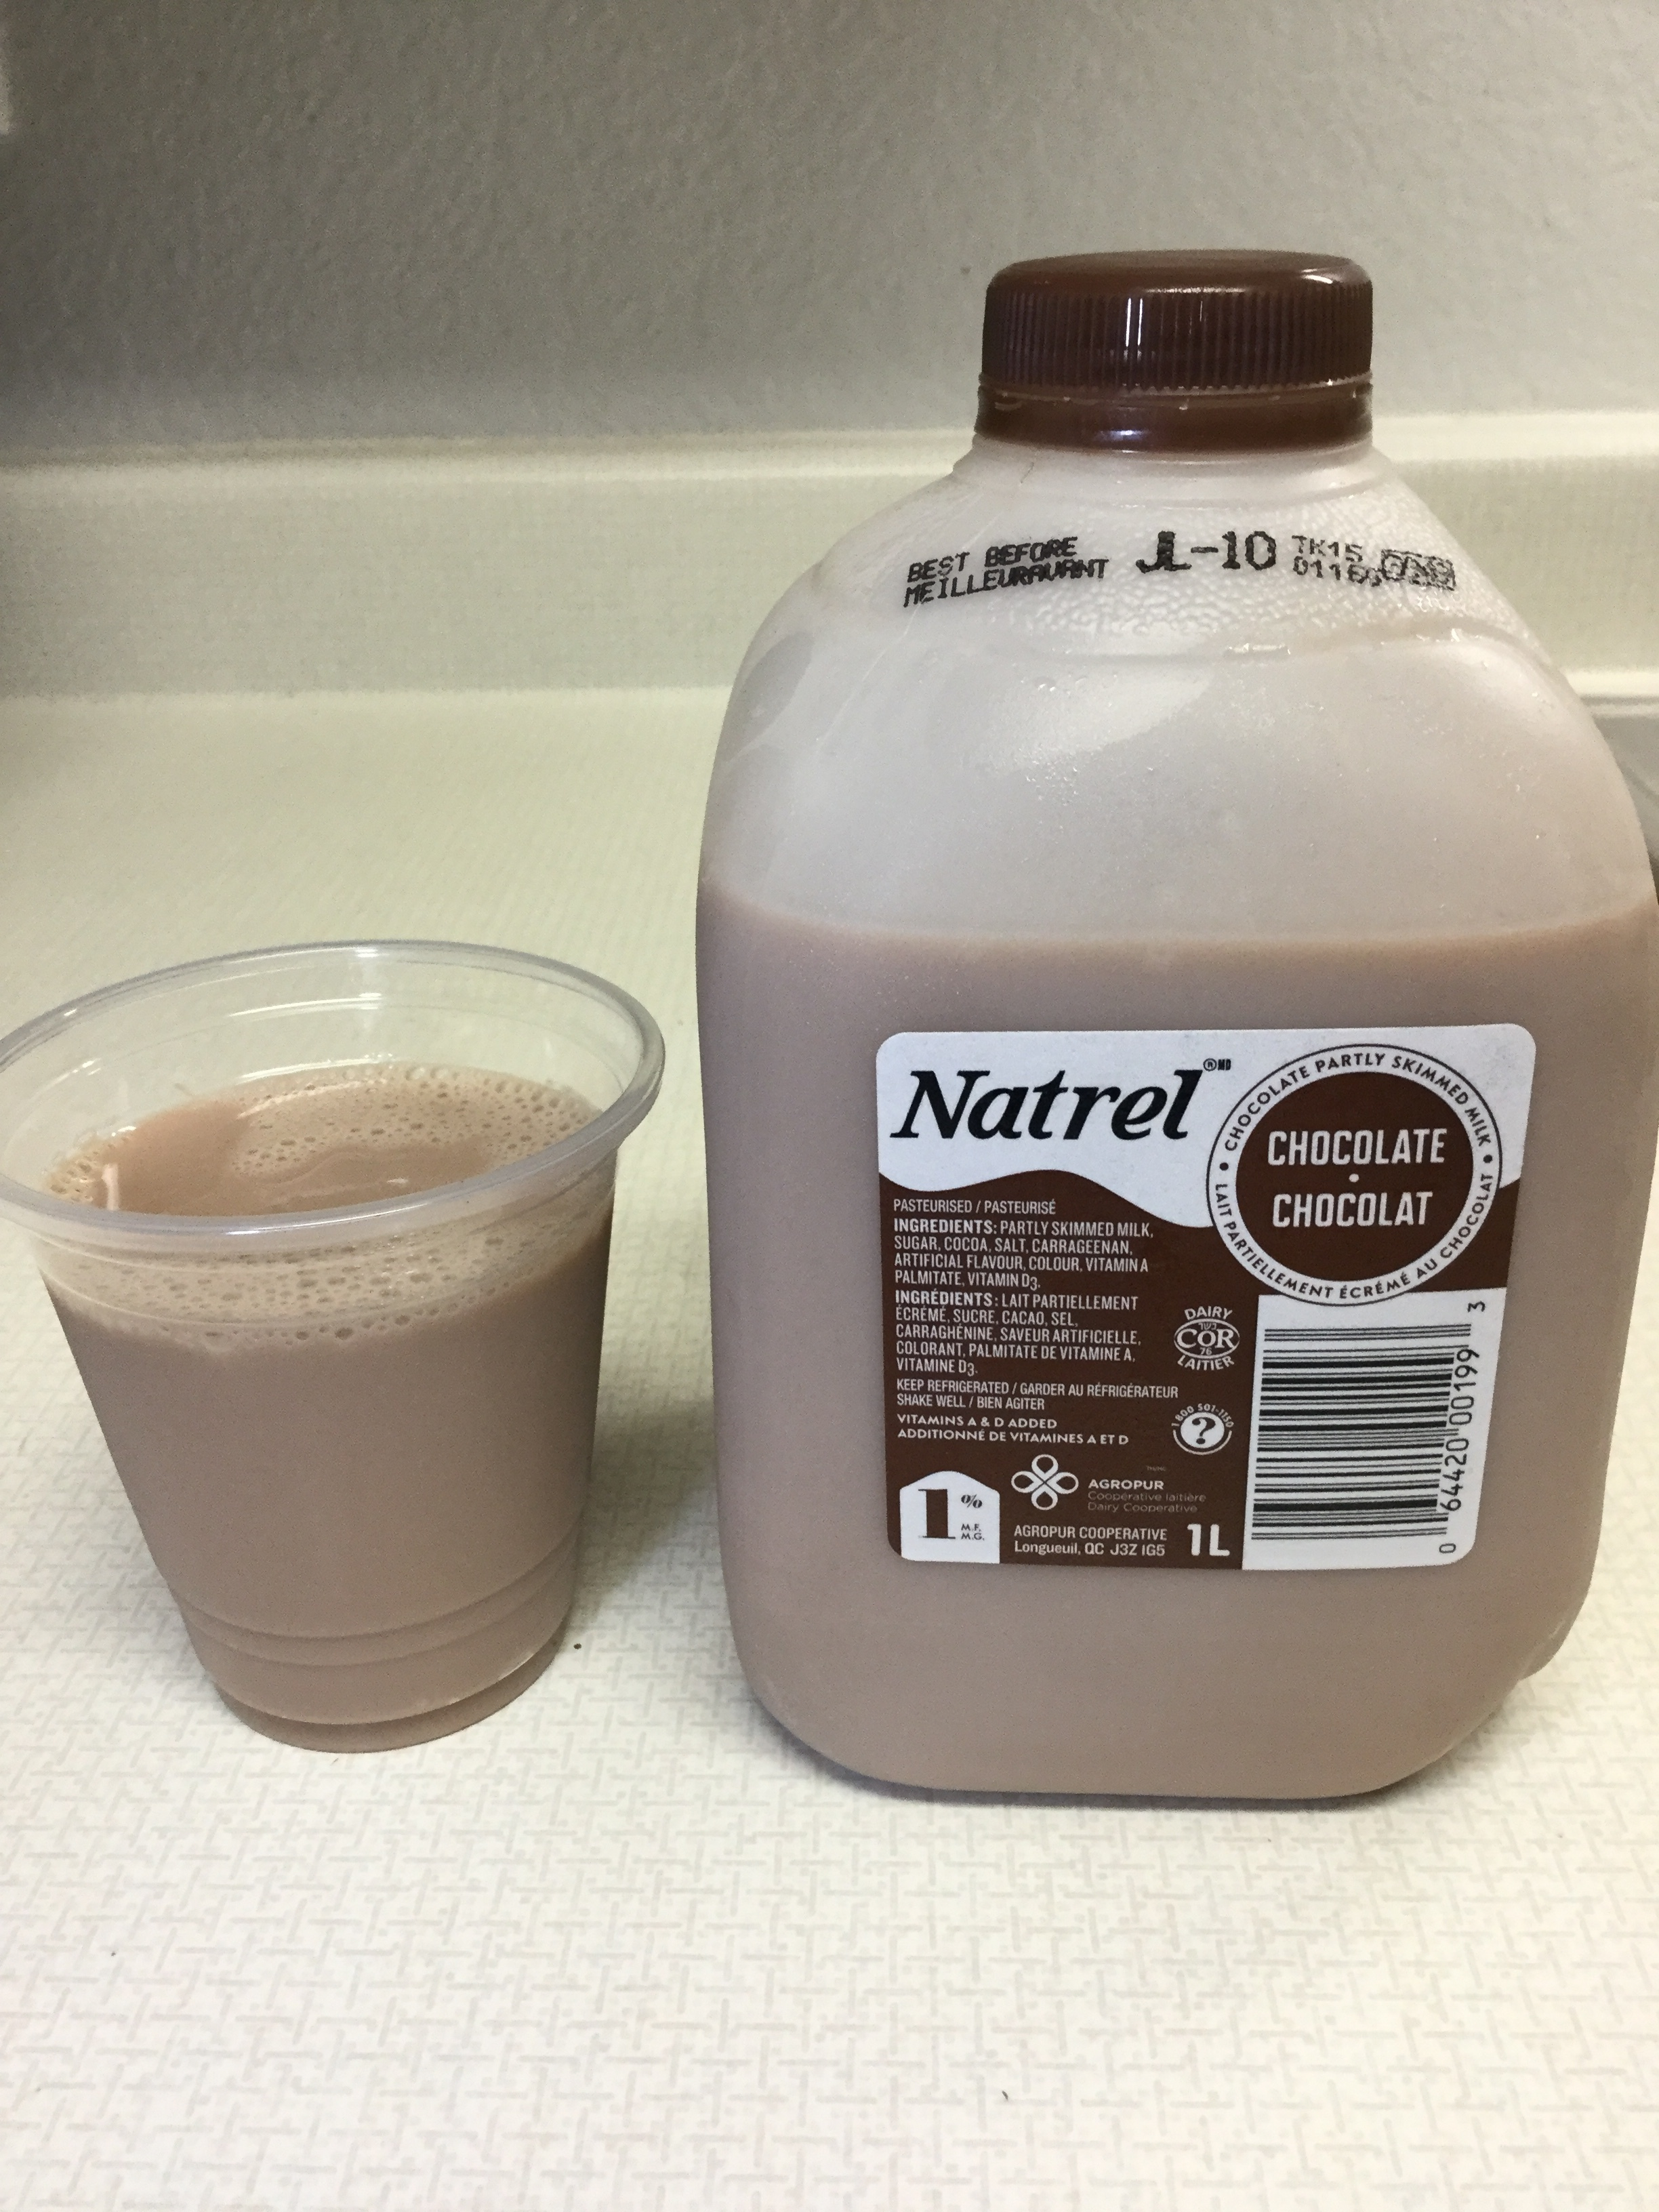 Natrel Chocolate Partly Skimmed Milk Cup